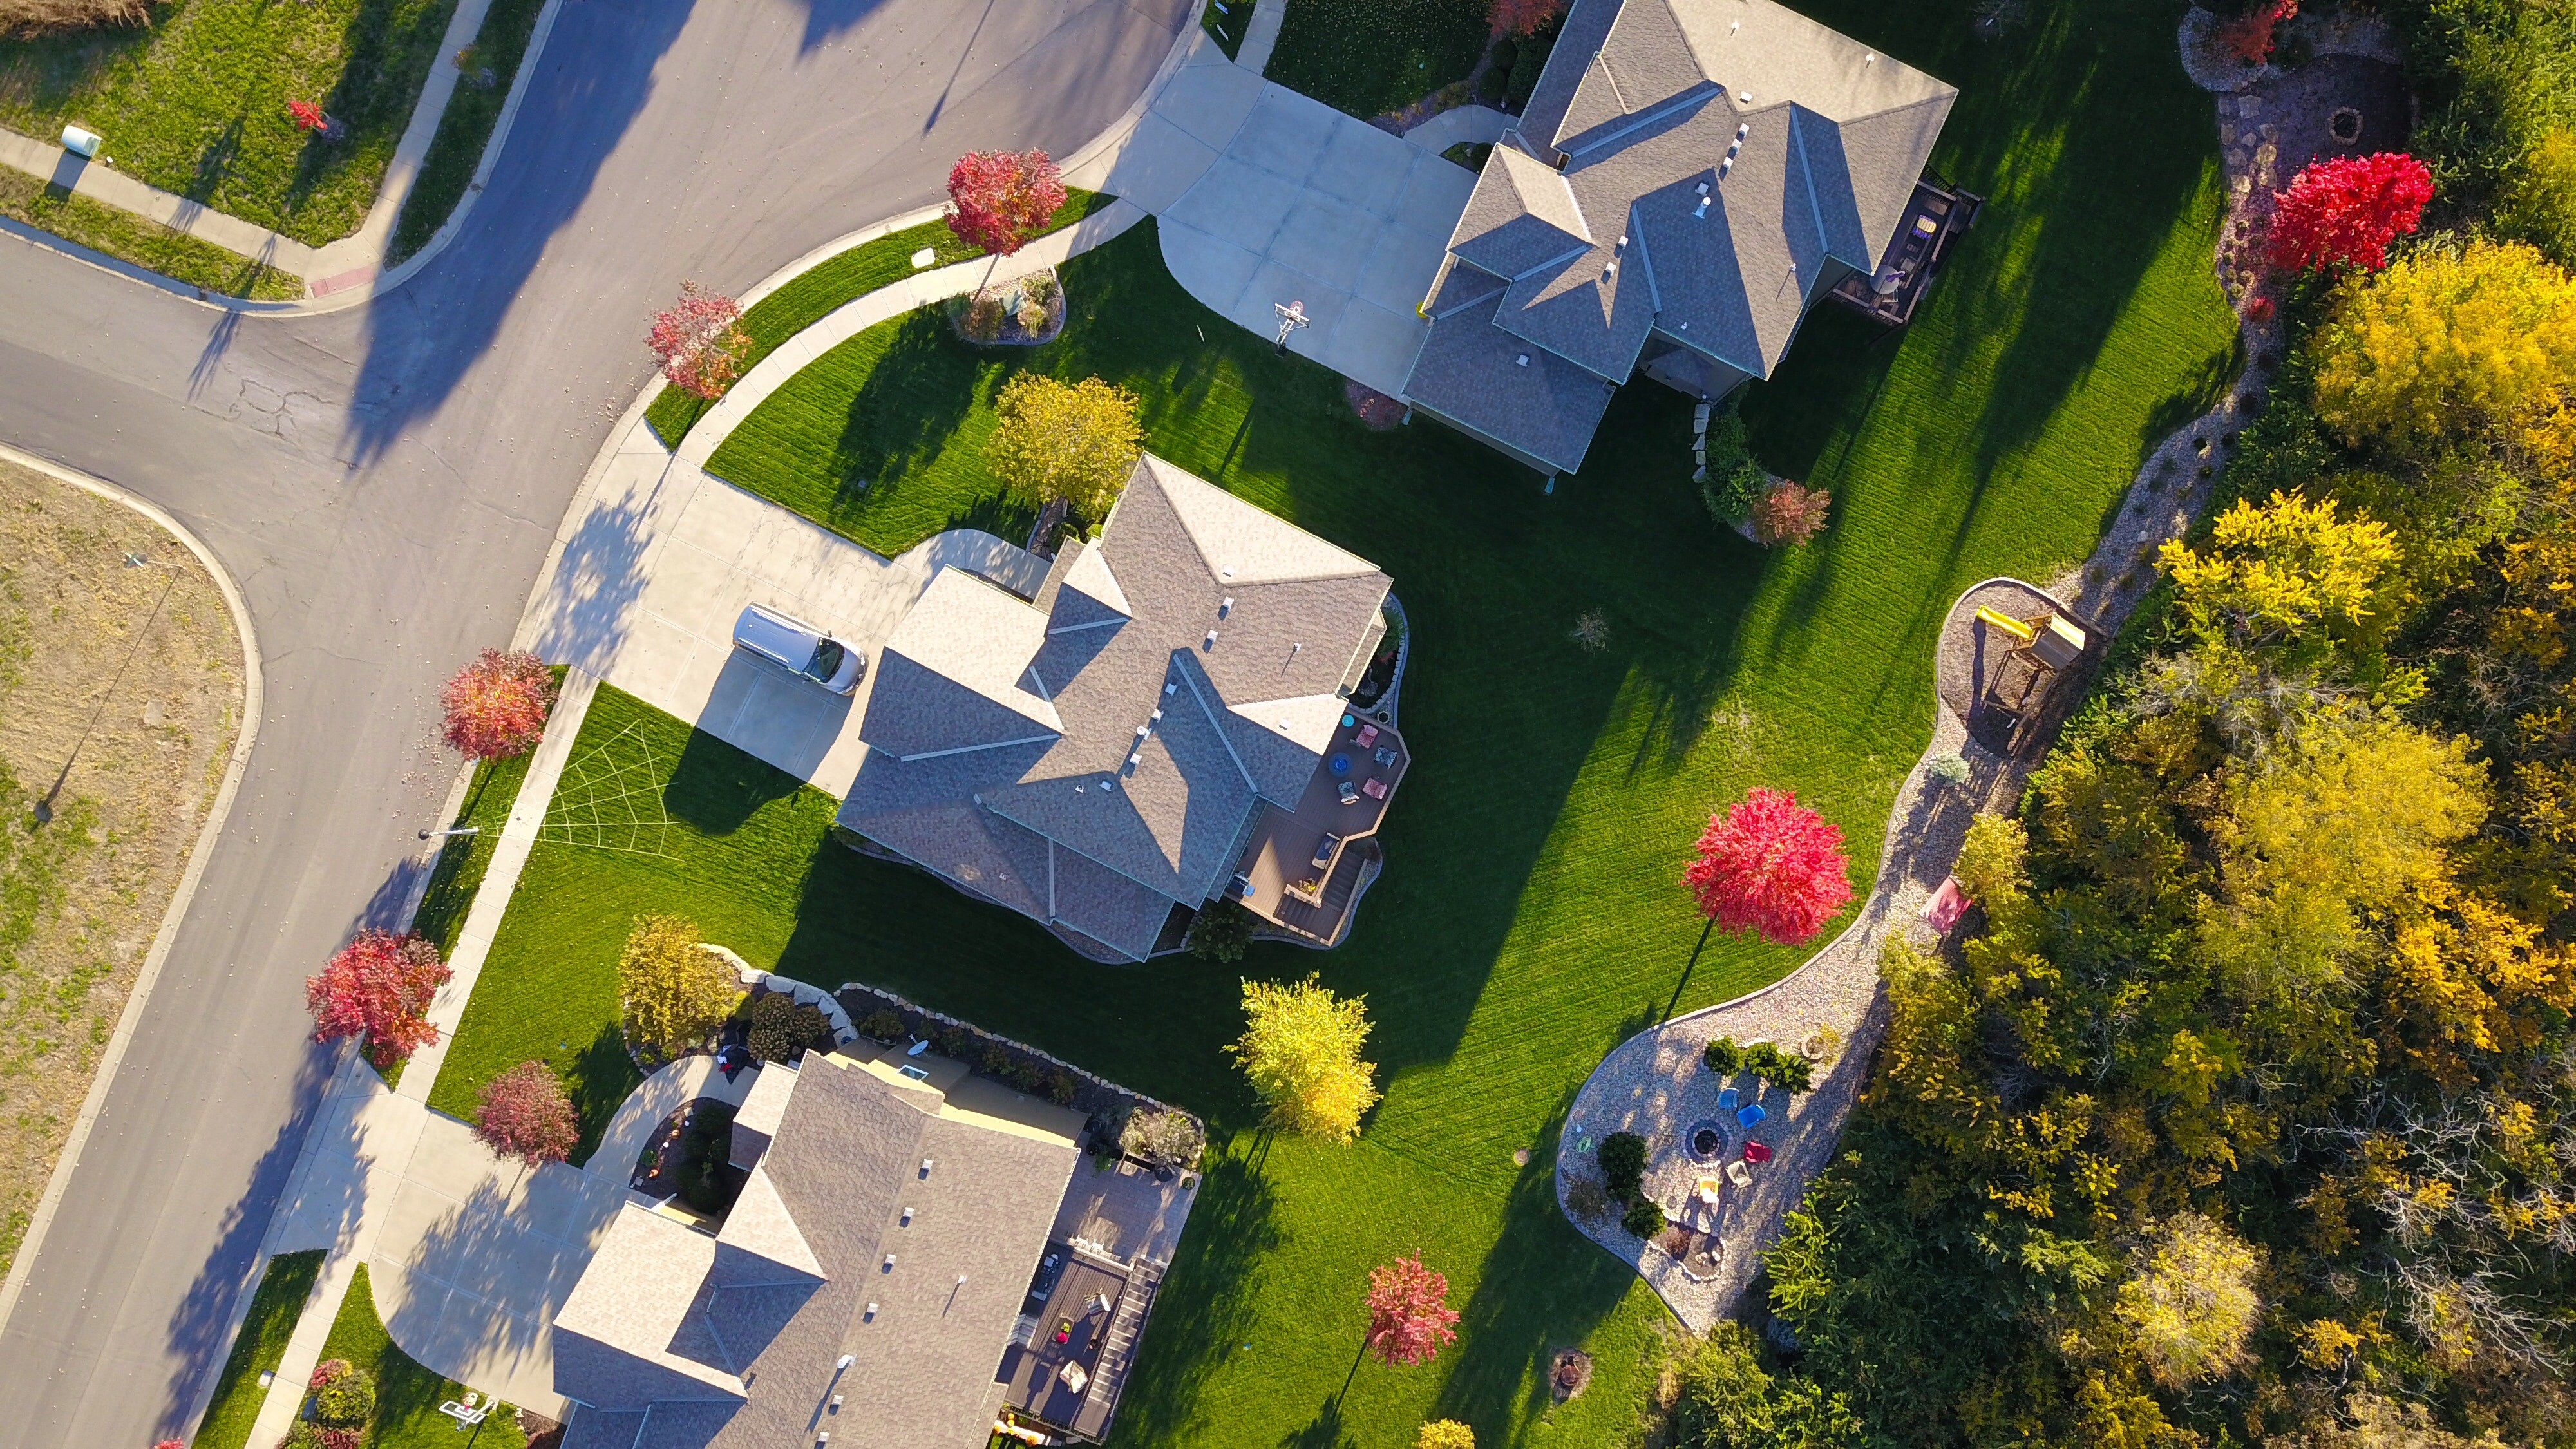 Drone view of rooftops to support how Rake helps roofing companies